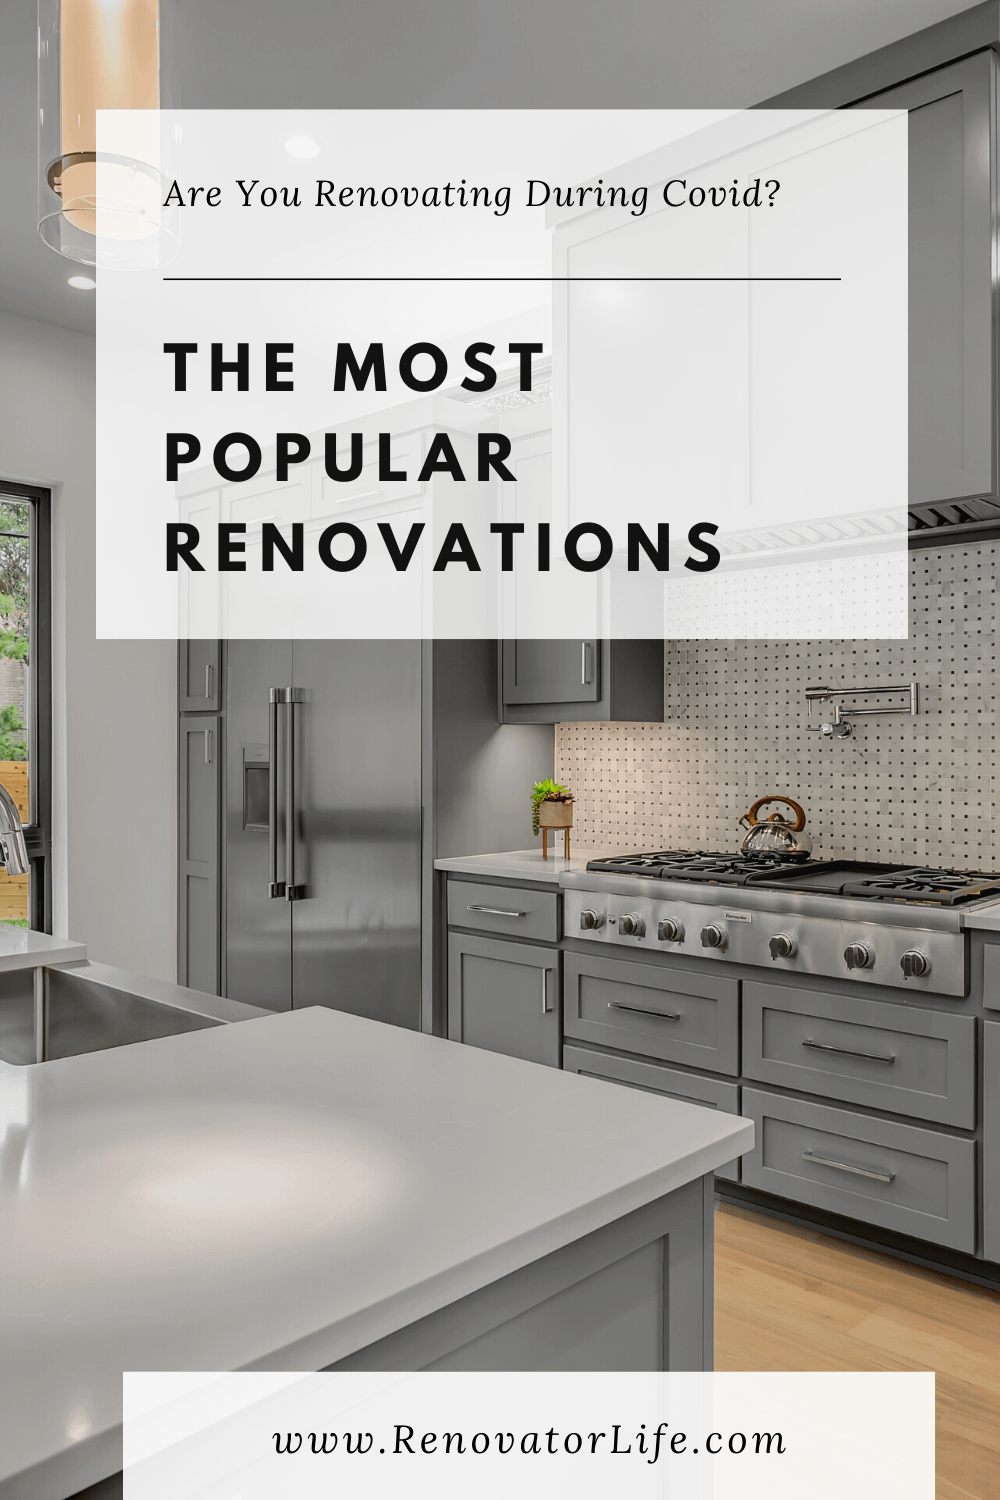 The Most Popular Renovations